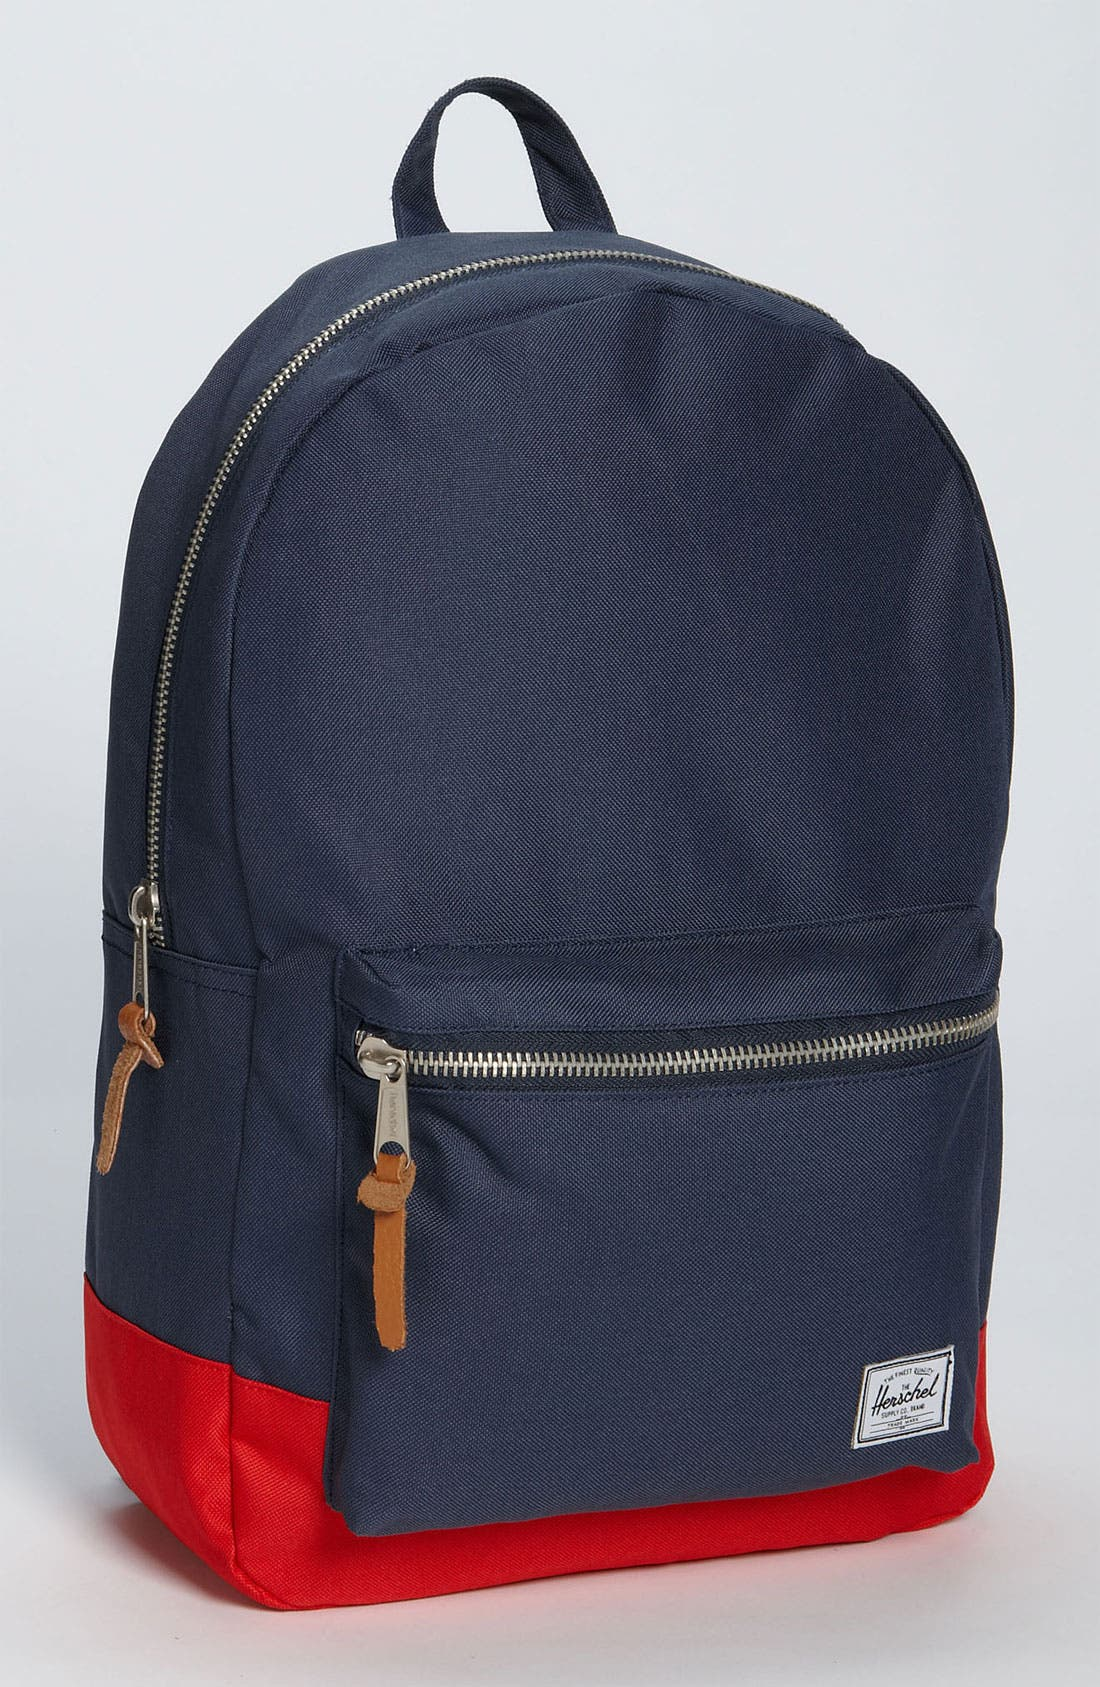 Settlement Backpack,                             Main thumbnail 1, color,                             Navy/ Red